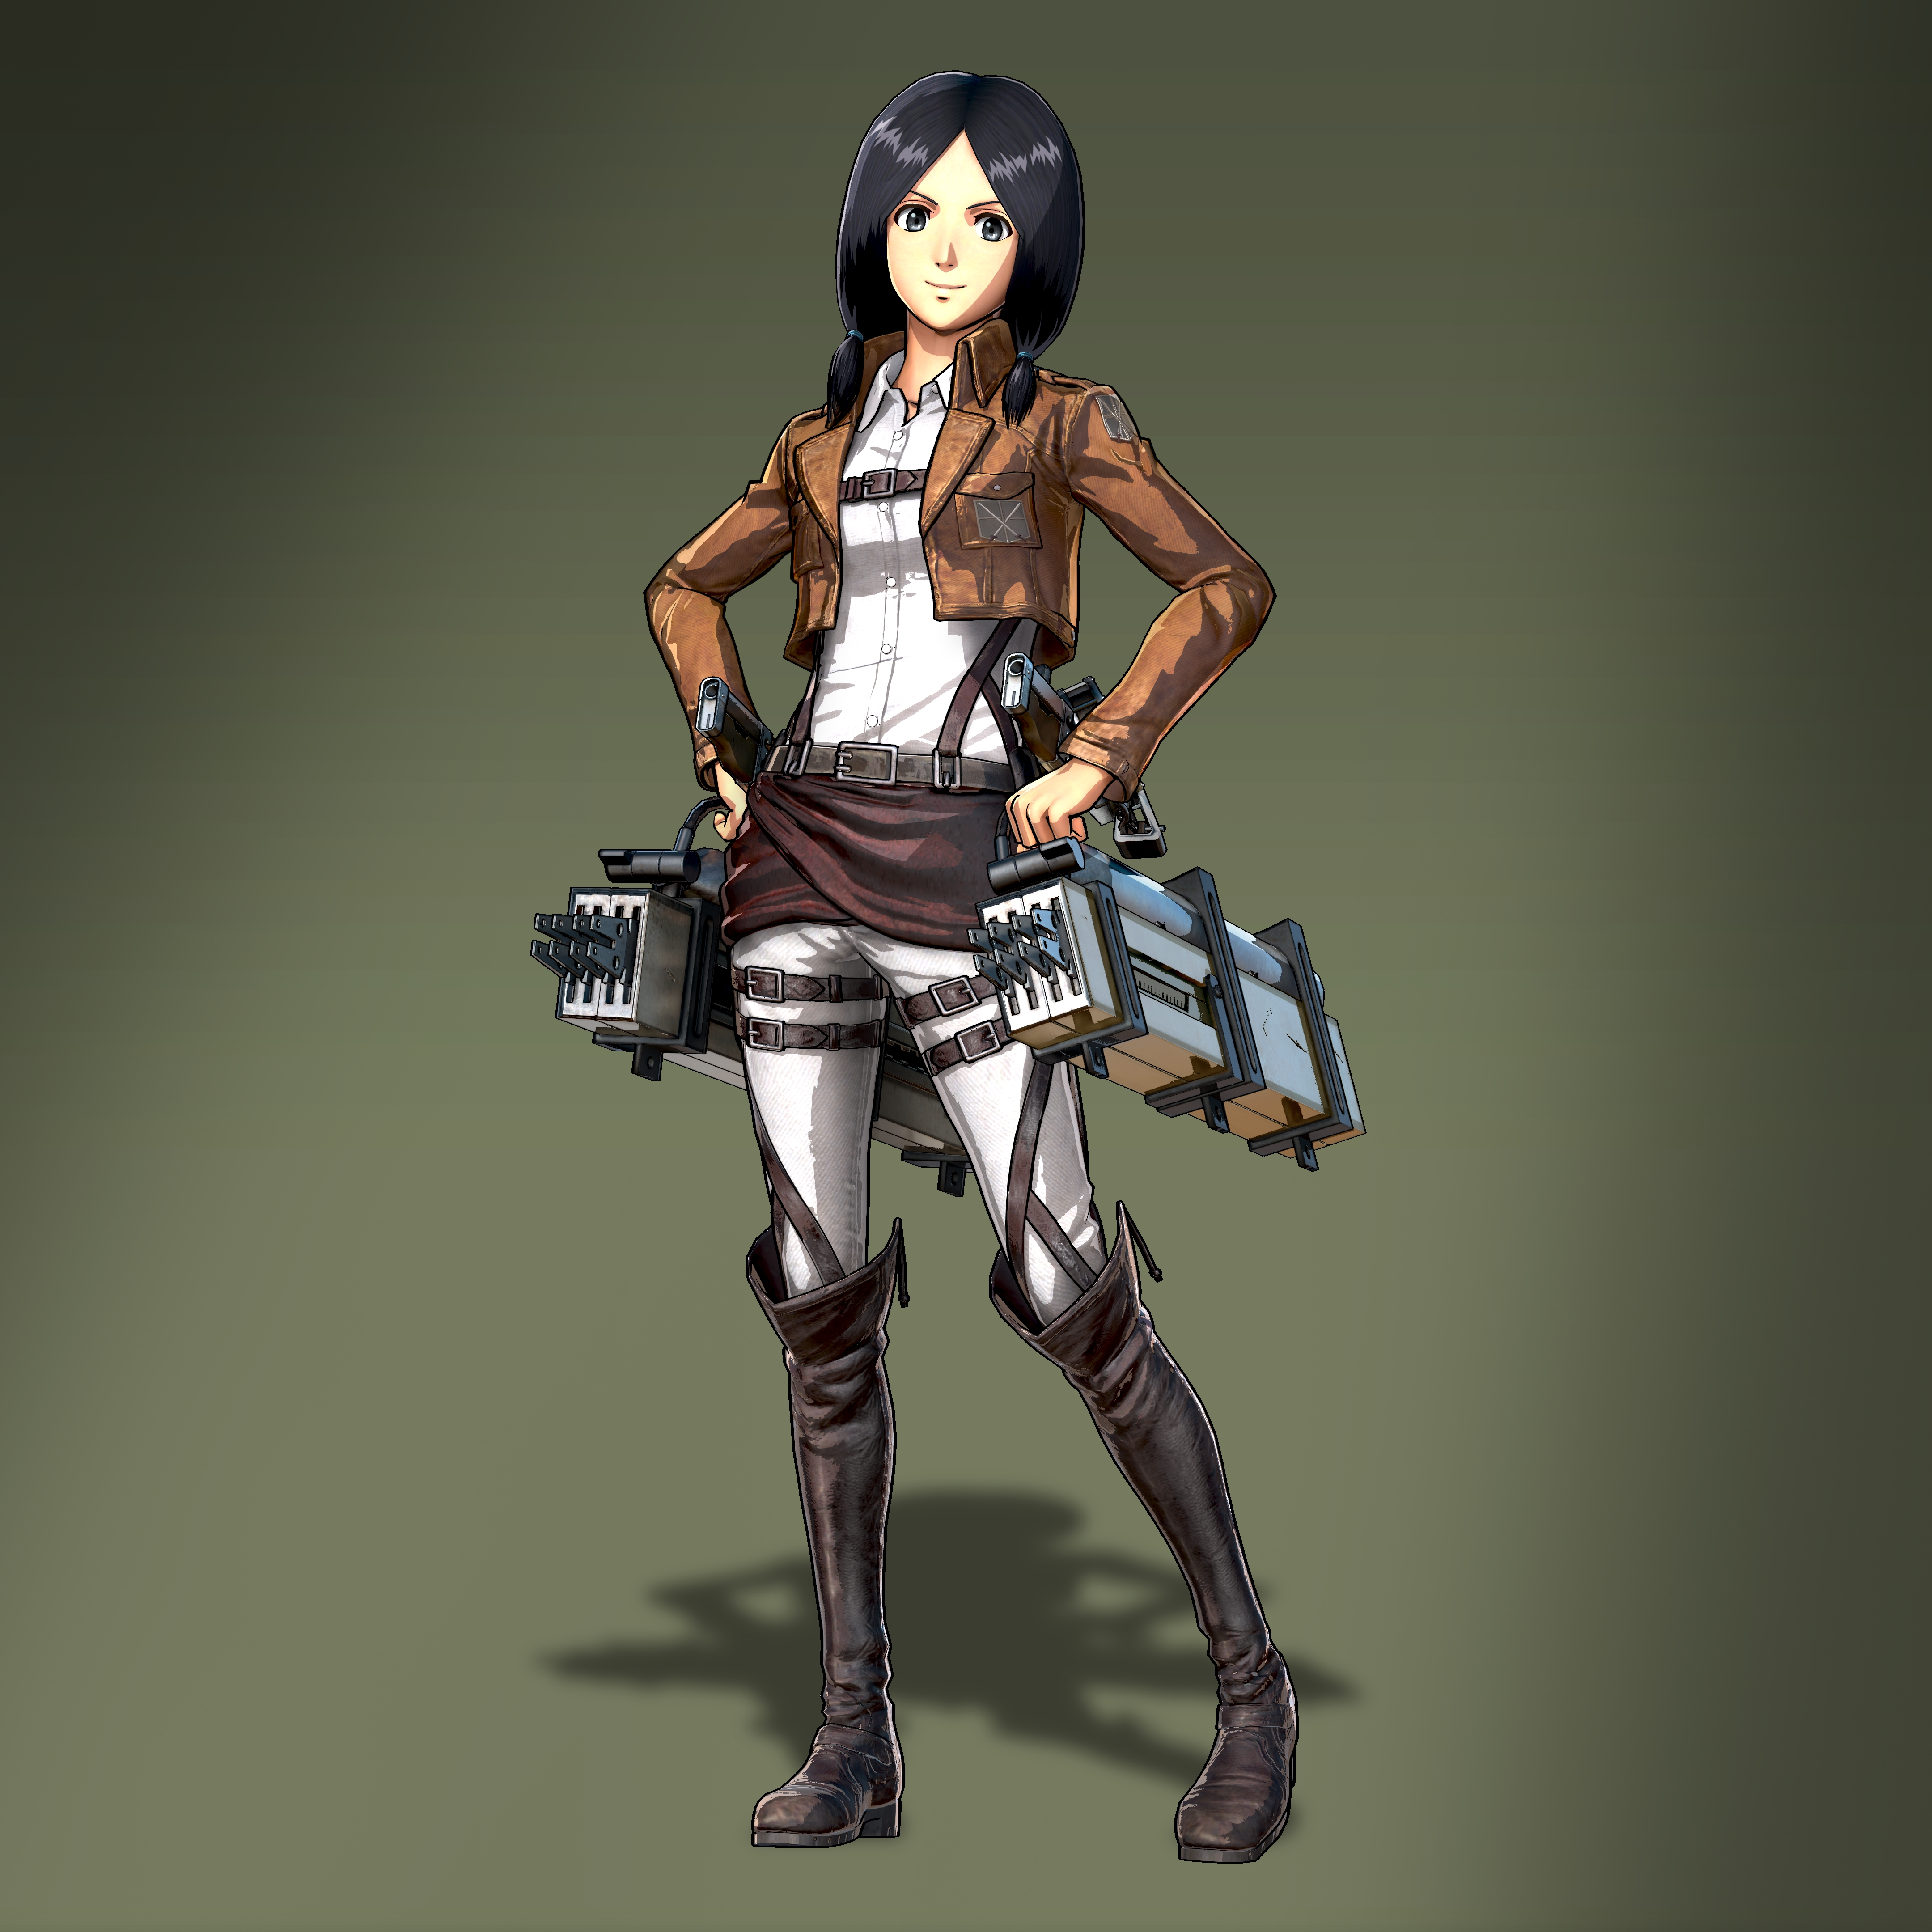 Attack on Titan 2 Mina Carolina Render